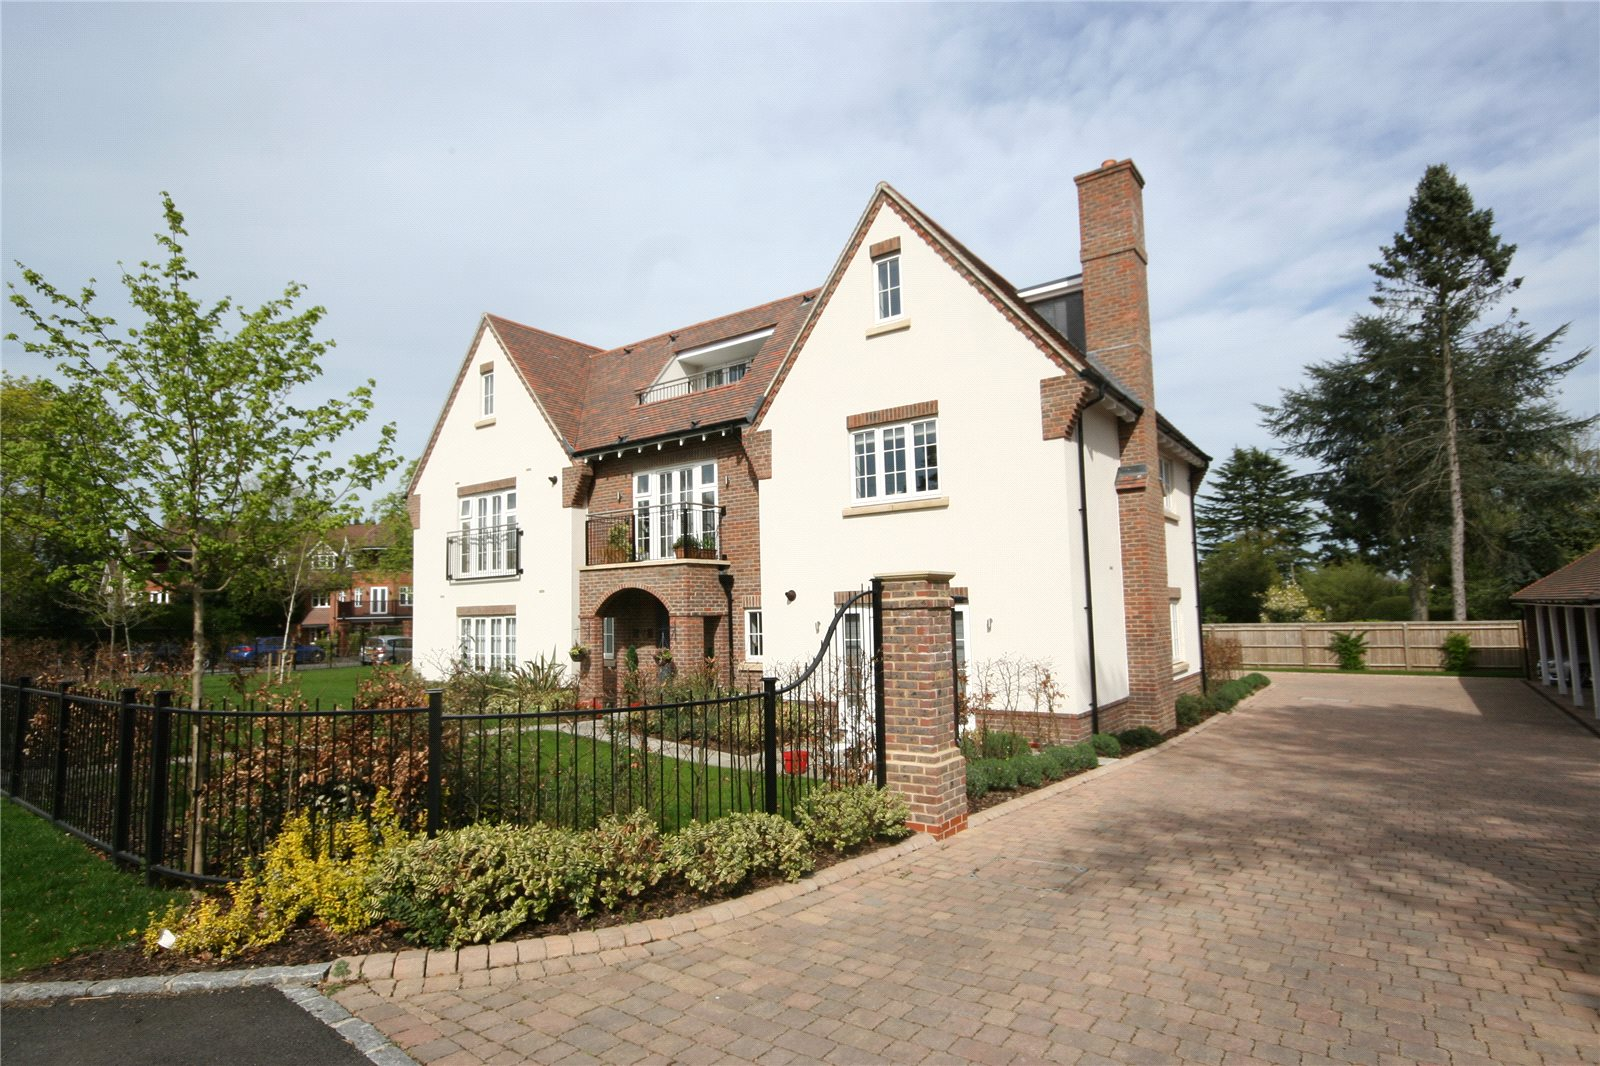 Additional photo for property listing at Aspin Lodge, 38 North Park, Gerrards Cross, Buckinghamshire, SL9 Gerrards Cross, イギリス